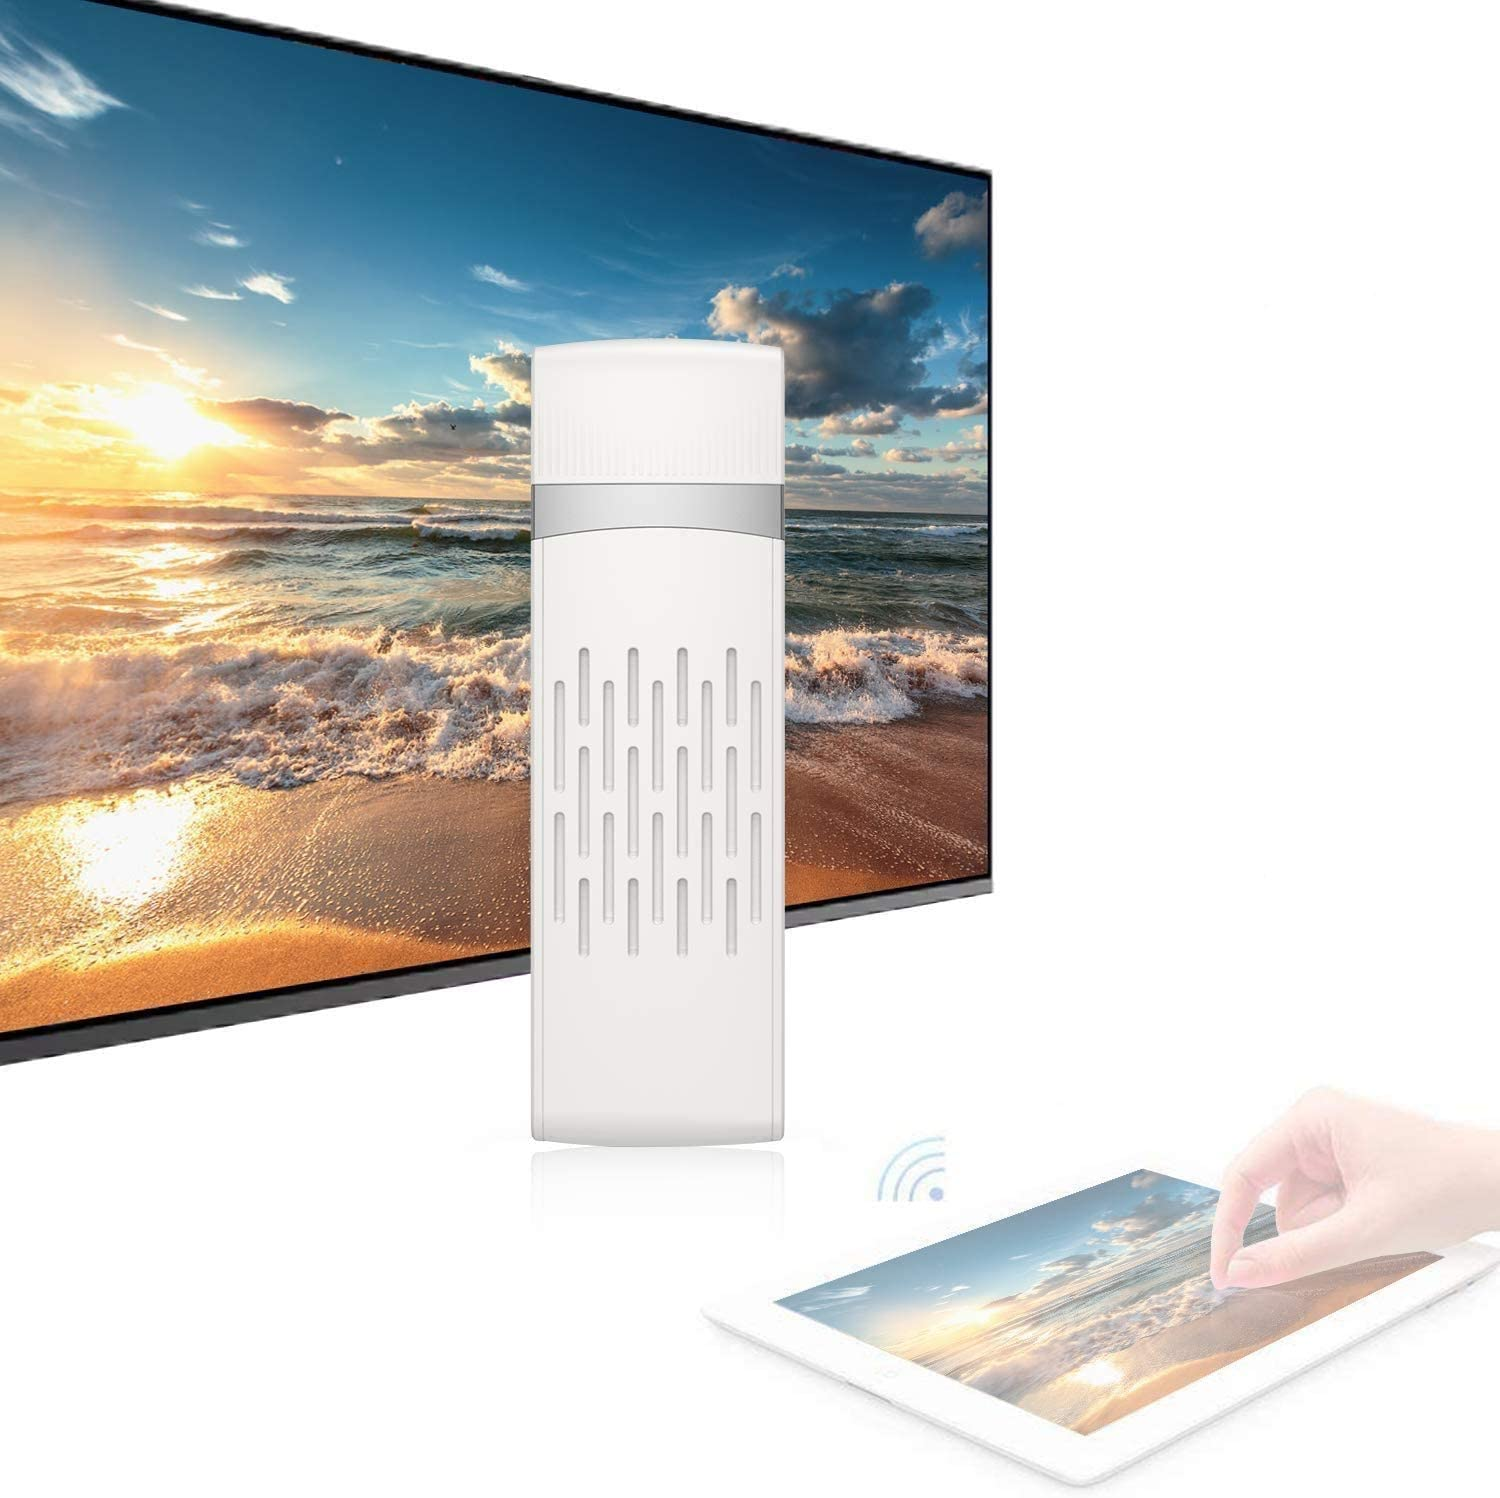 Bomaker Wireless Display Adapter, Support Wireless and Wired 2 in 1 Display Receiver for TV/Projector